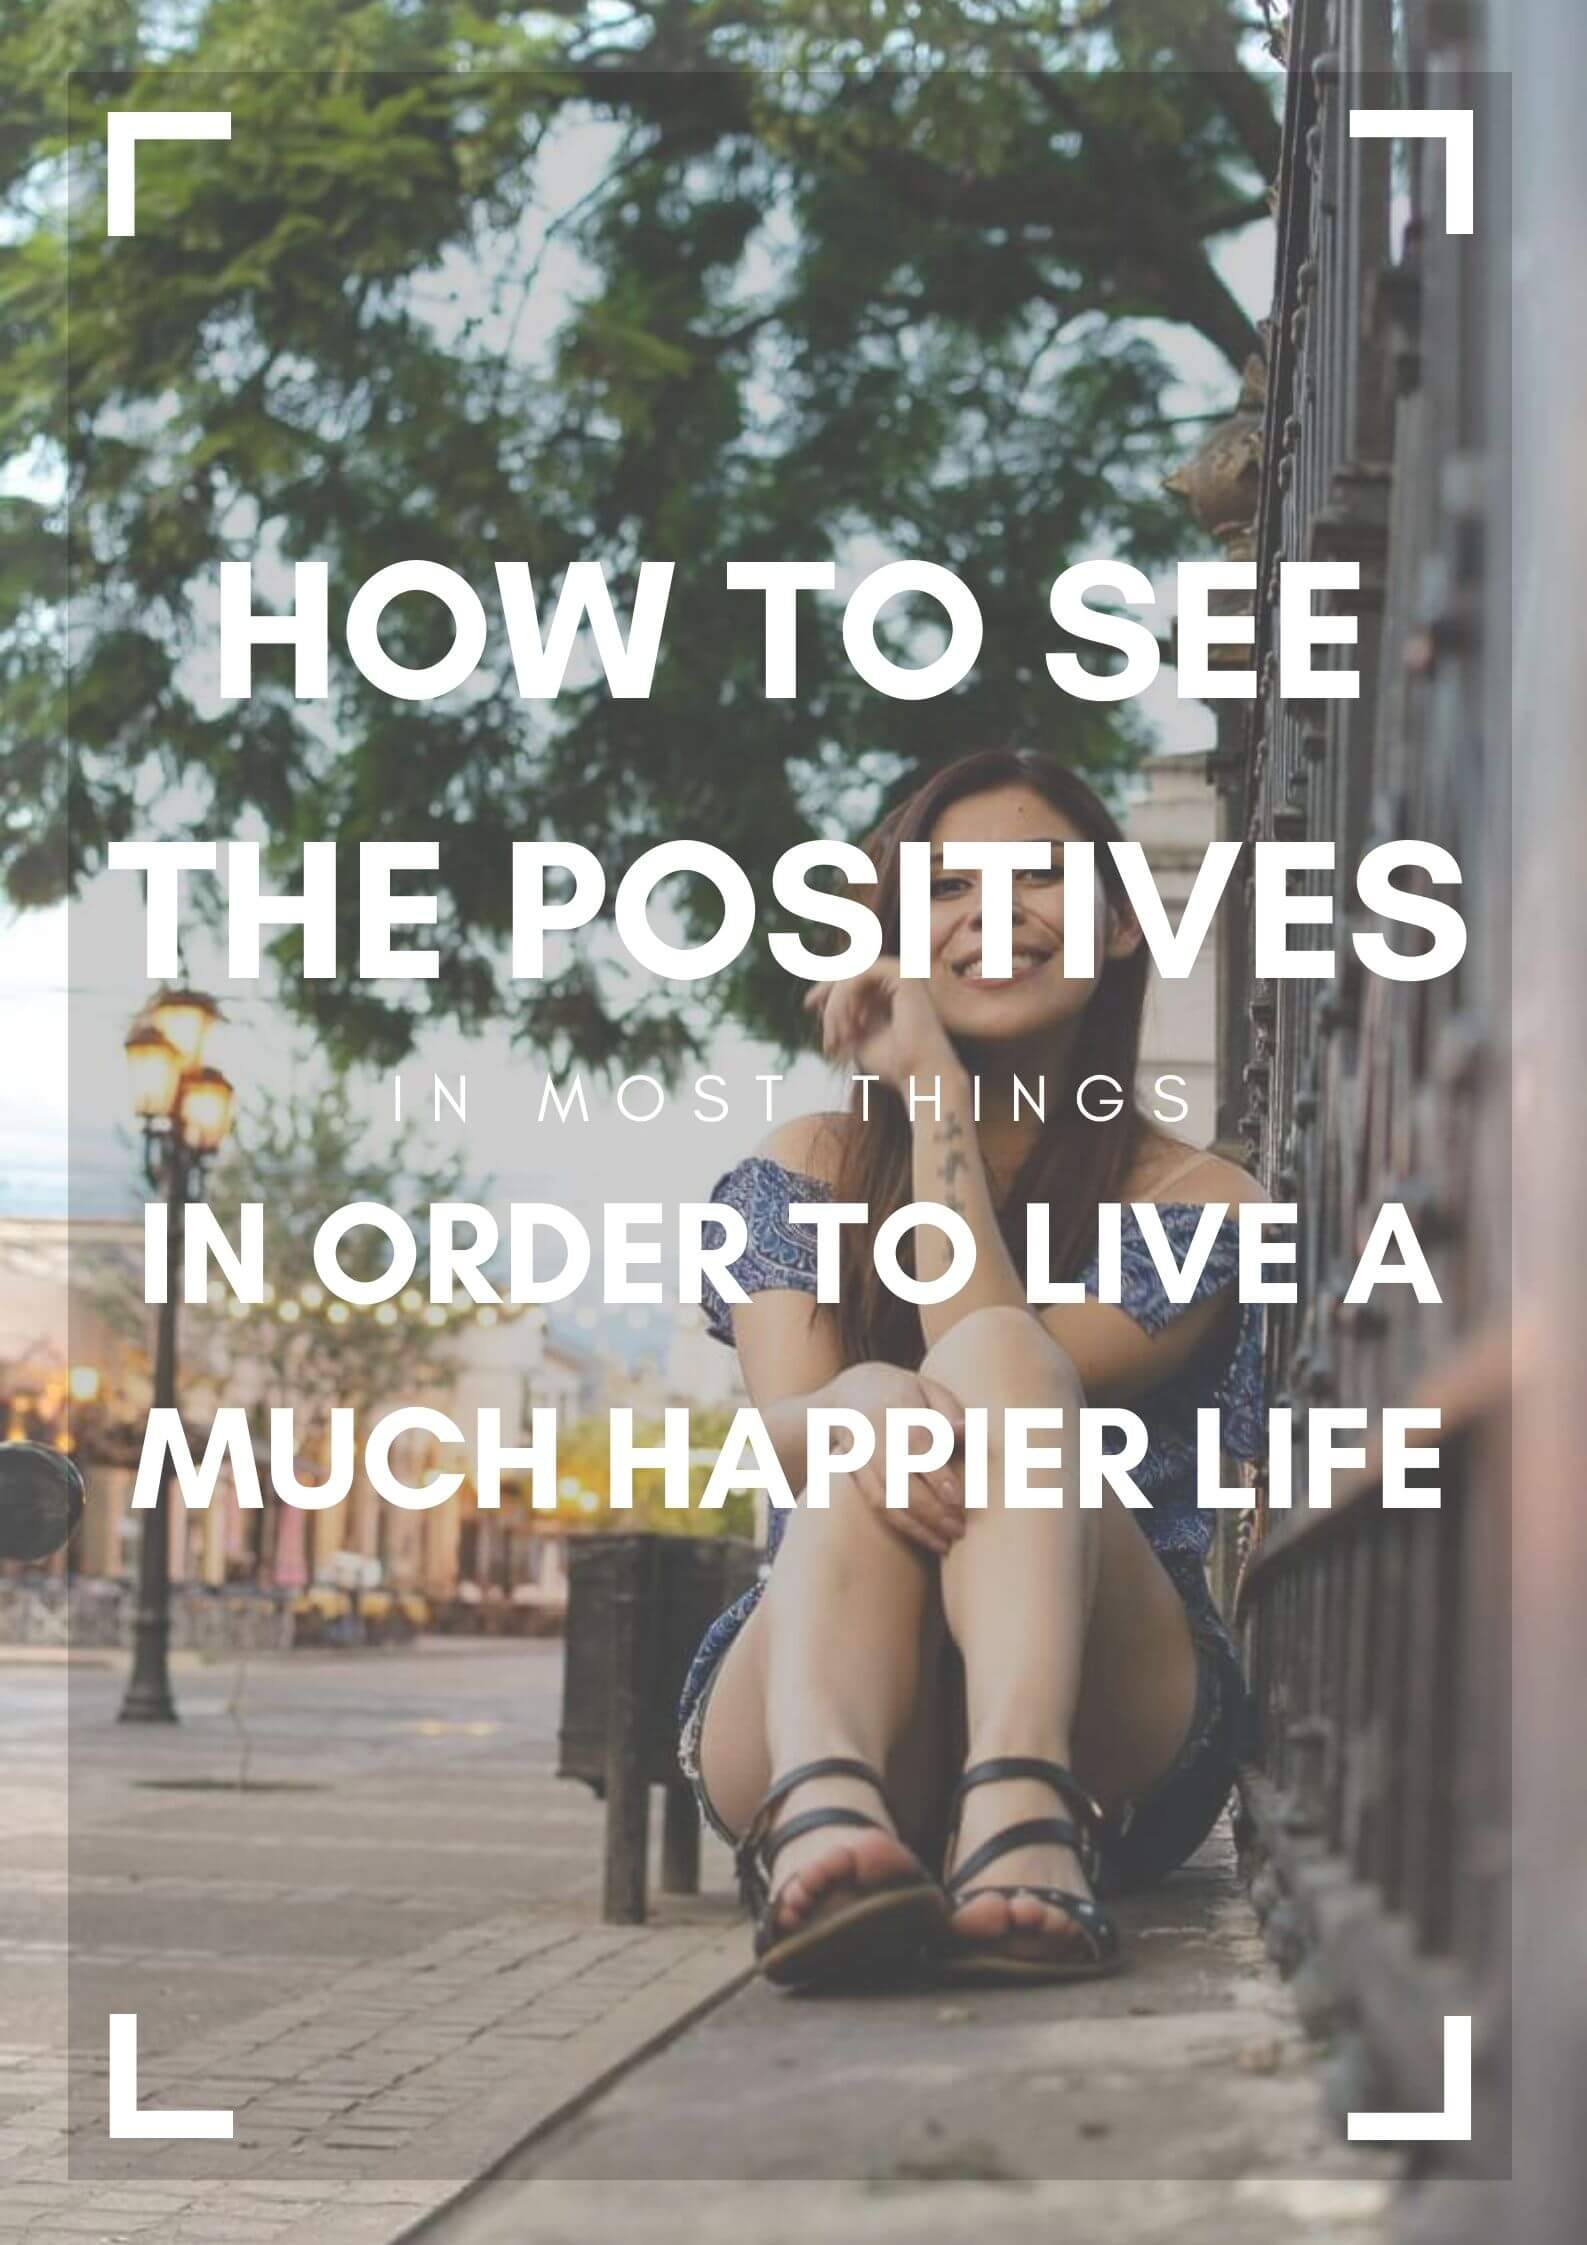 how to see the positives happy life